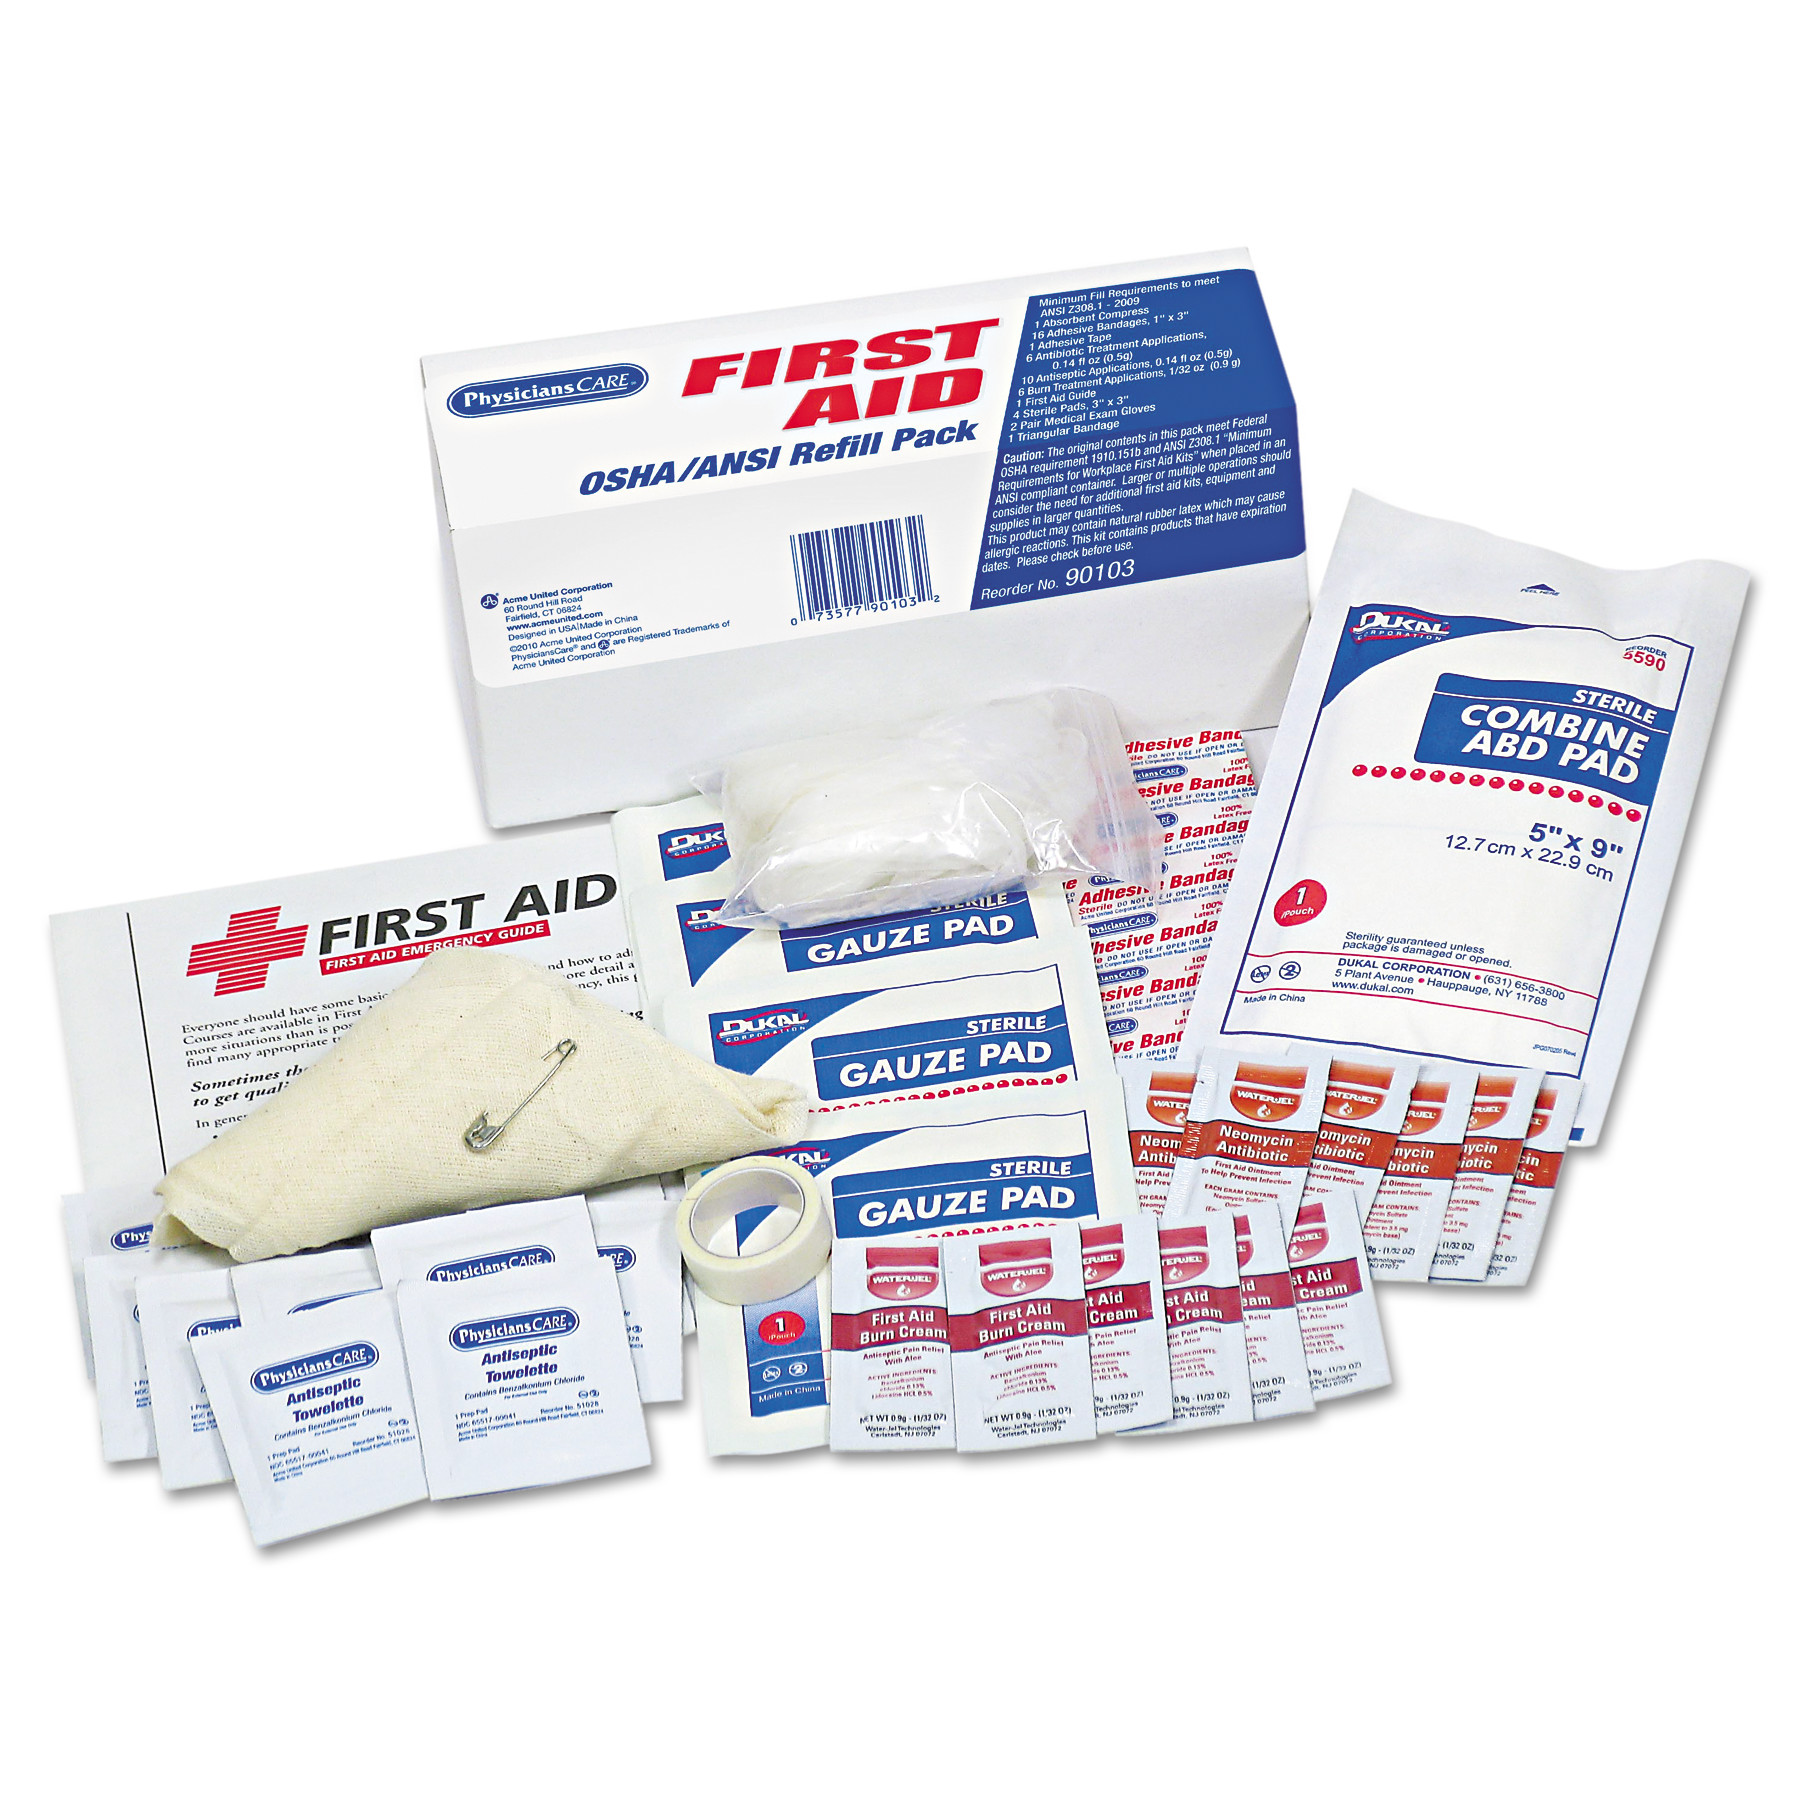 PhysiciansCare by First Aid Only OSHA First Aid Refill Kit, 48 Pieces Kit by ACME UNITED CORPORATION